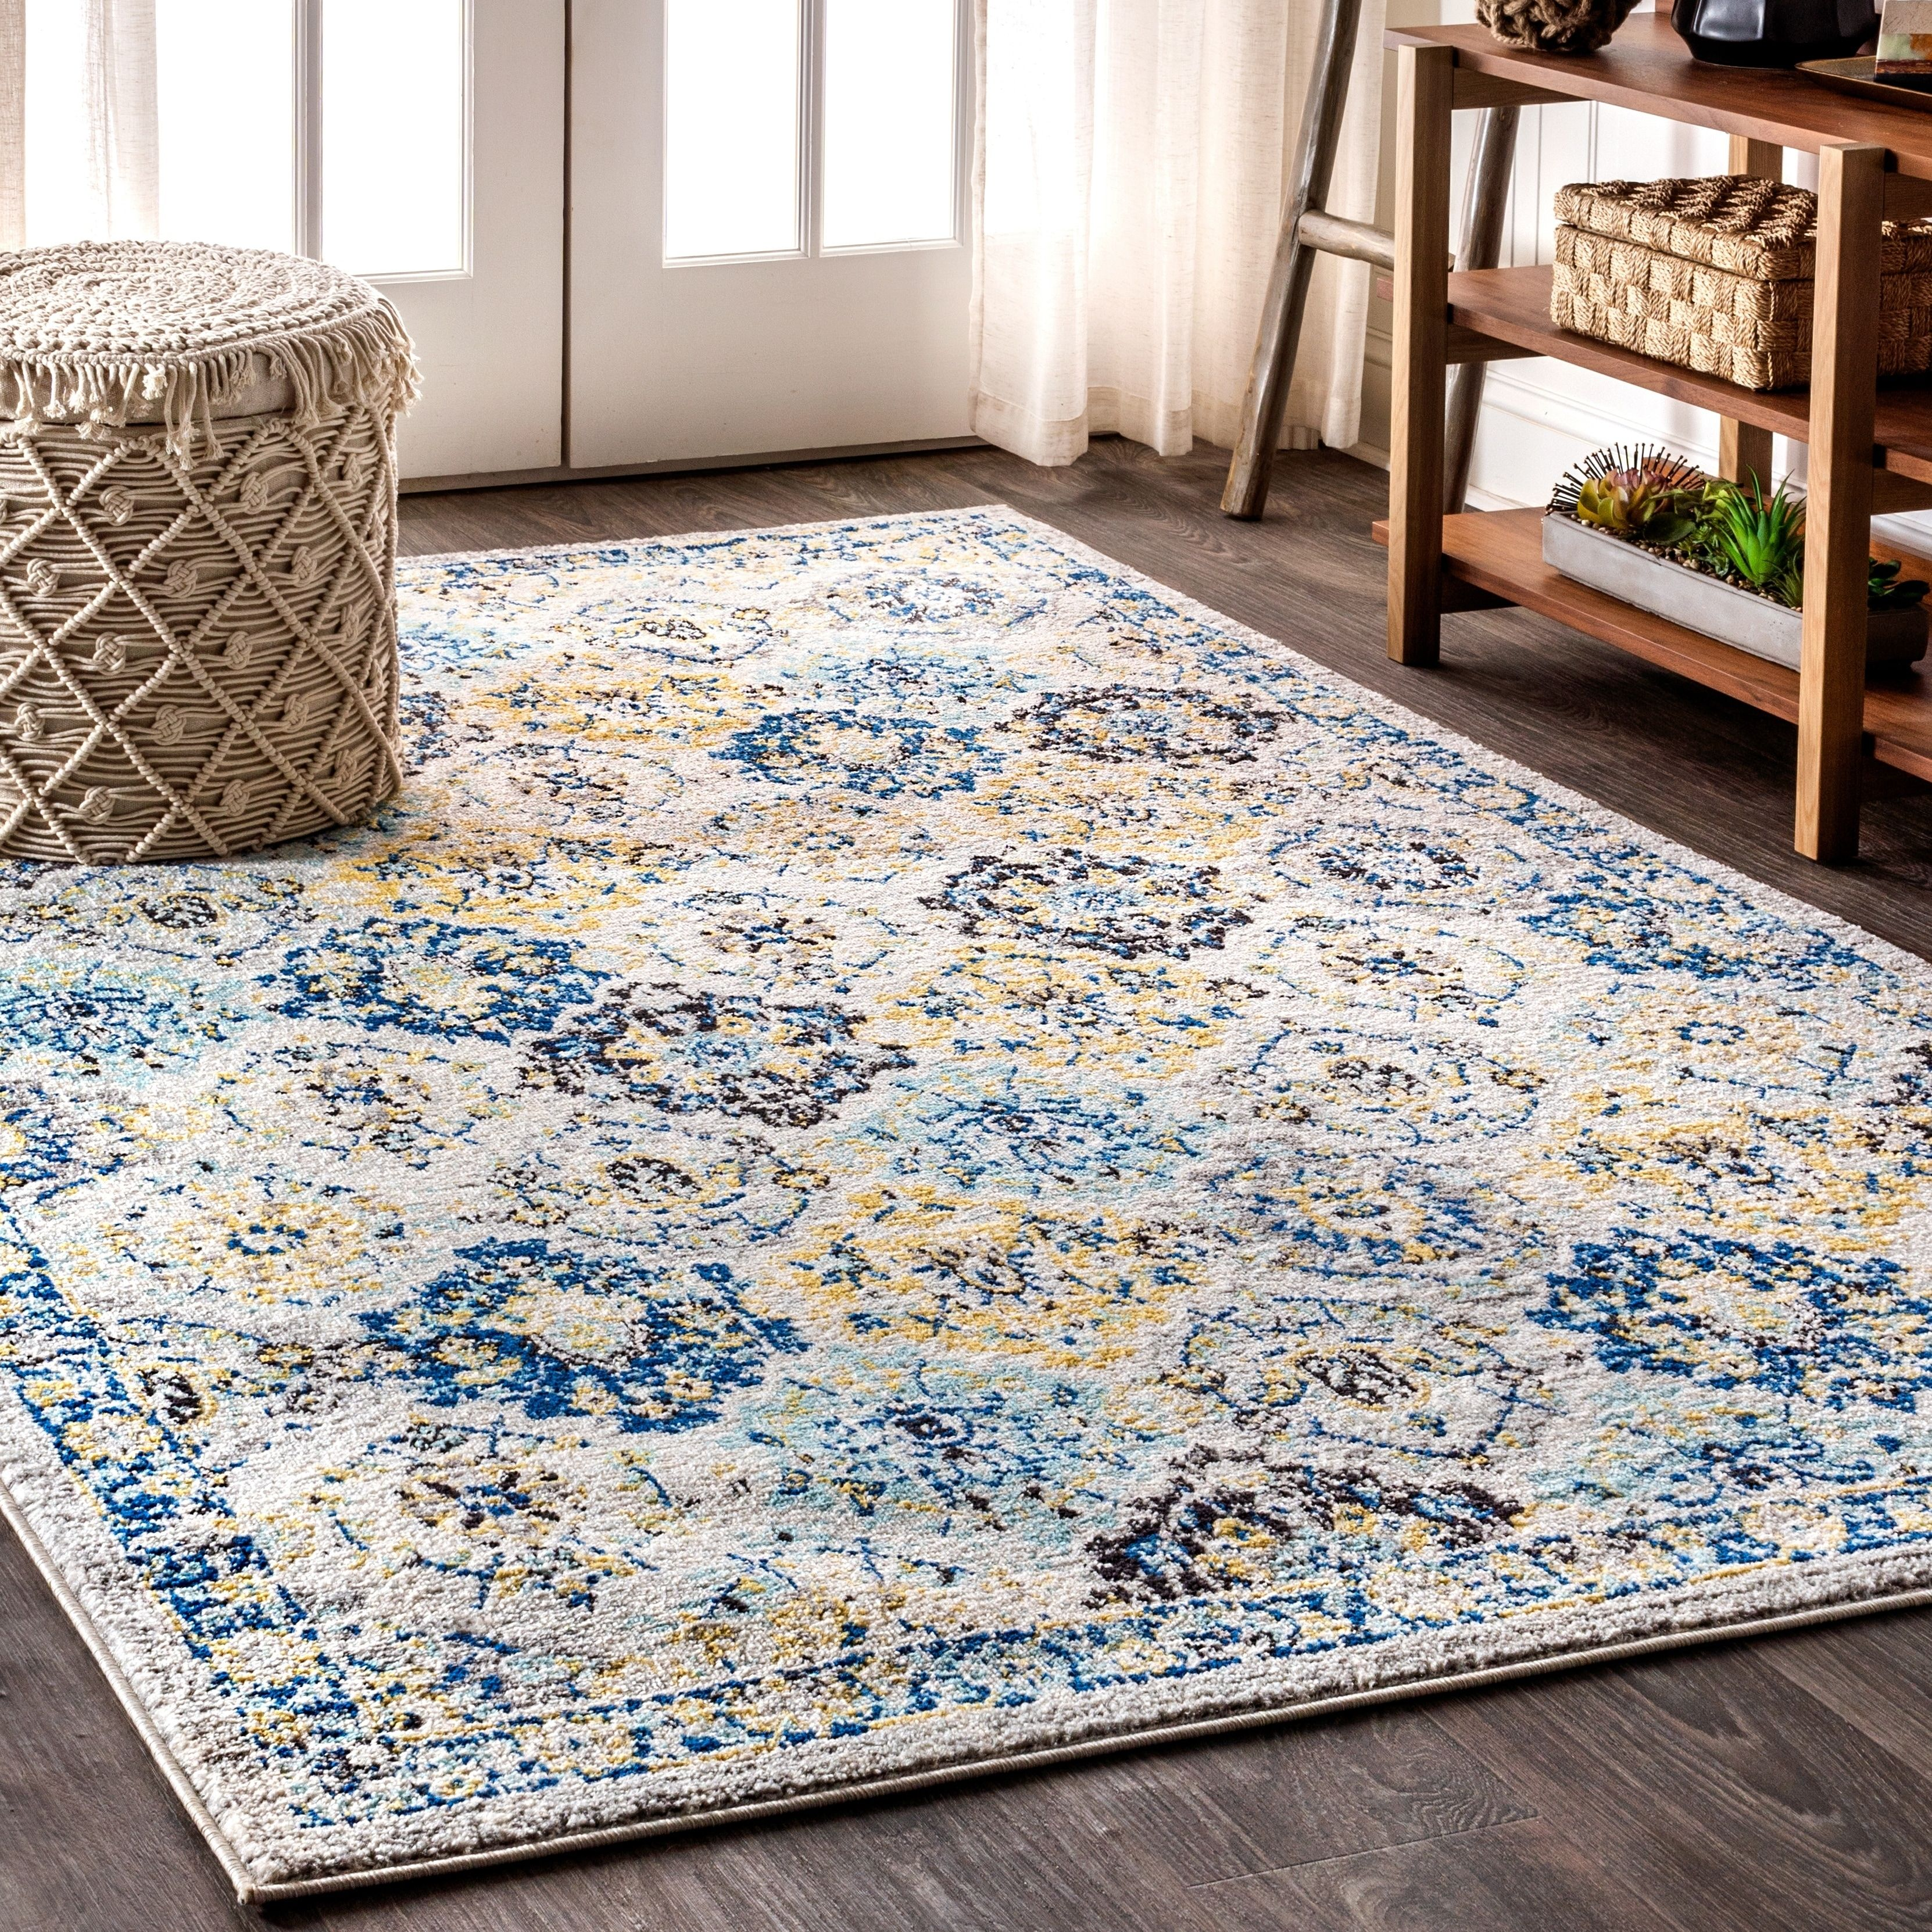 Overstock Com Online Shopping Bedding Furniture Electronics Jewelry Clothing More Trending Decor Traditional Persian Rugs Area Rugs